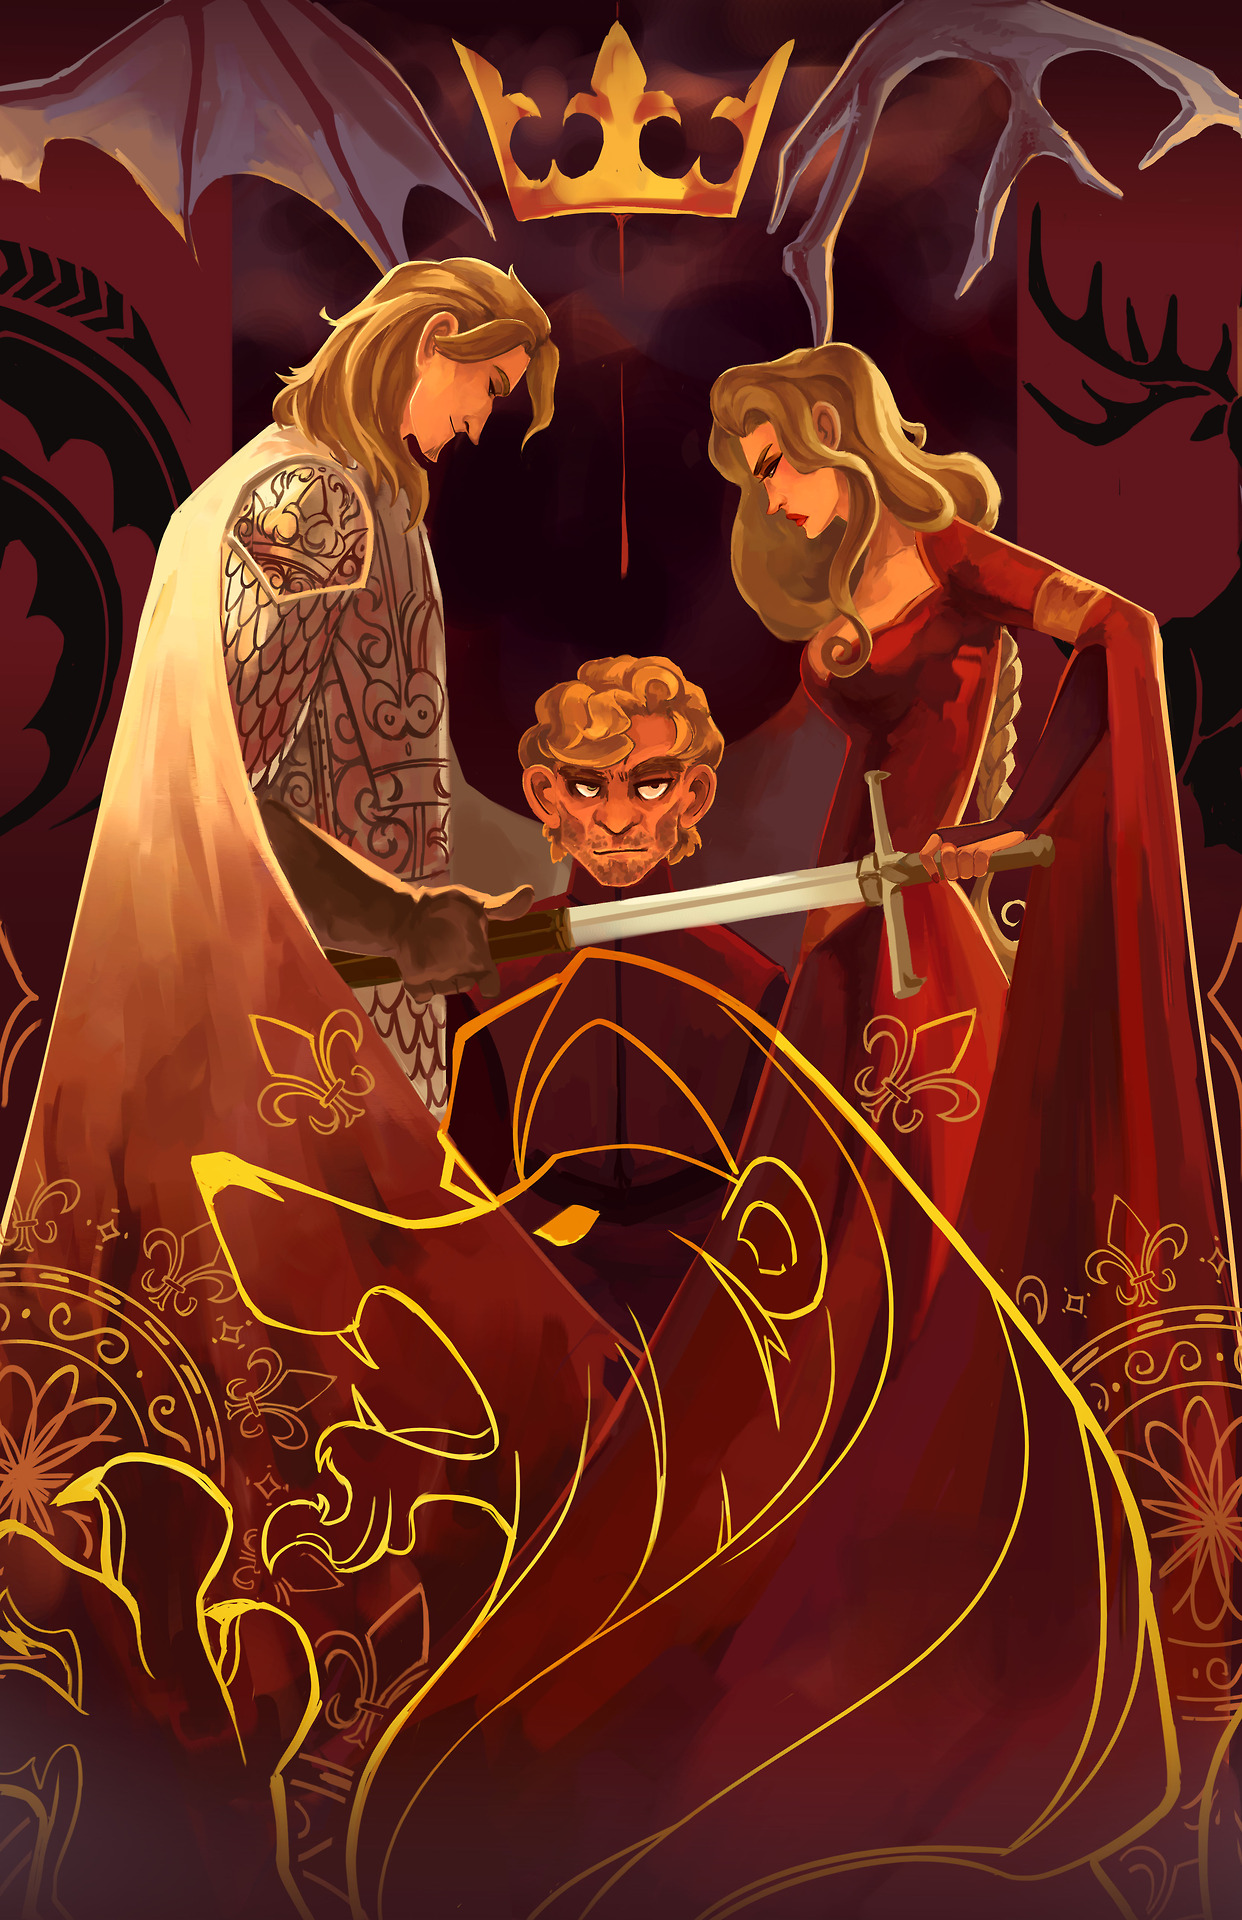 Doodle-Mon-Game-of-Thrones-Lannisters.jpg